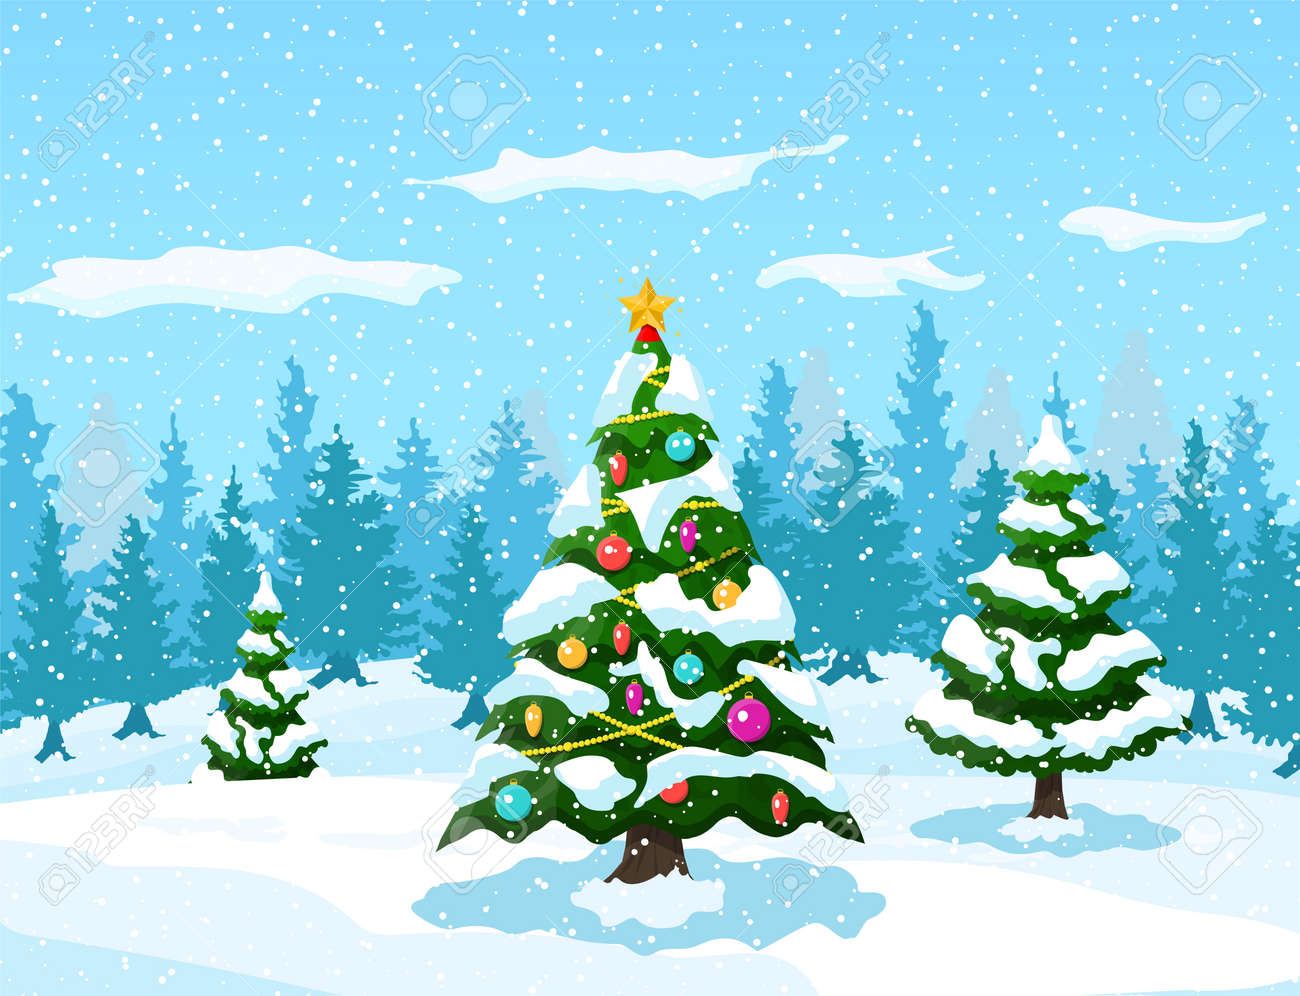 Christmas Trees Background Clipart.Christmas Background Christmas Tree With Garlands And Balls